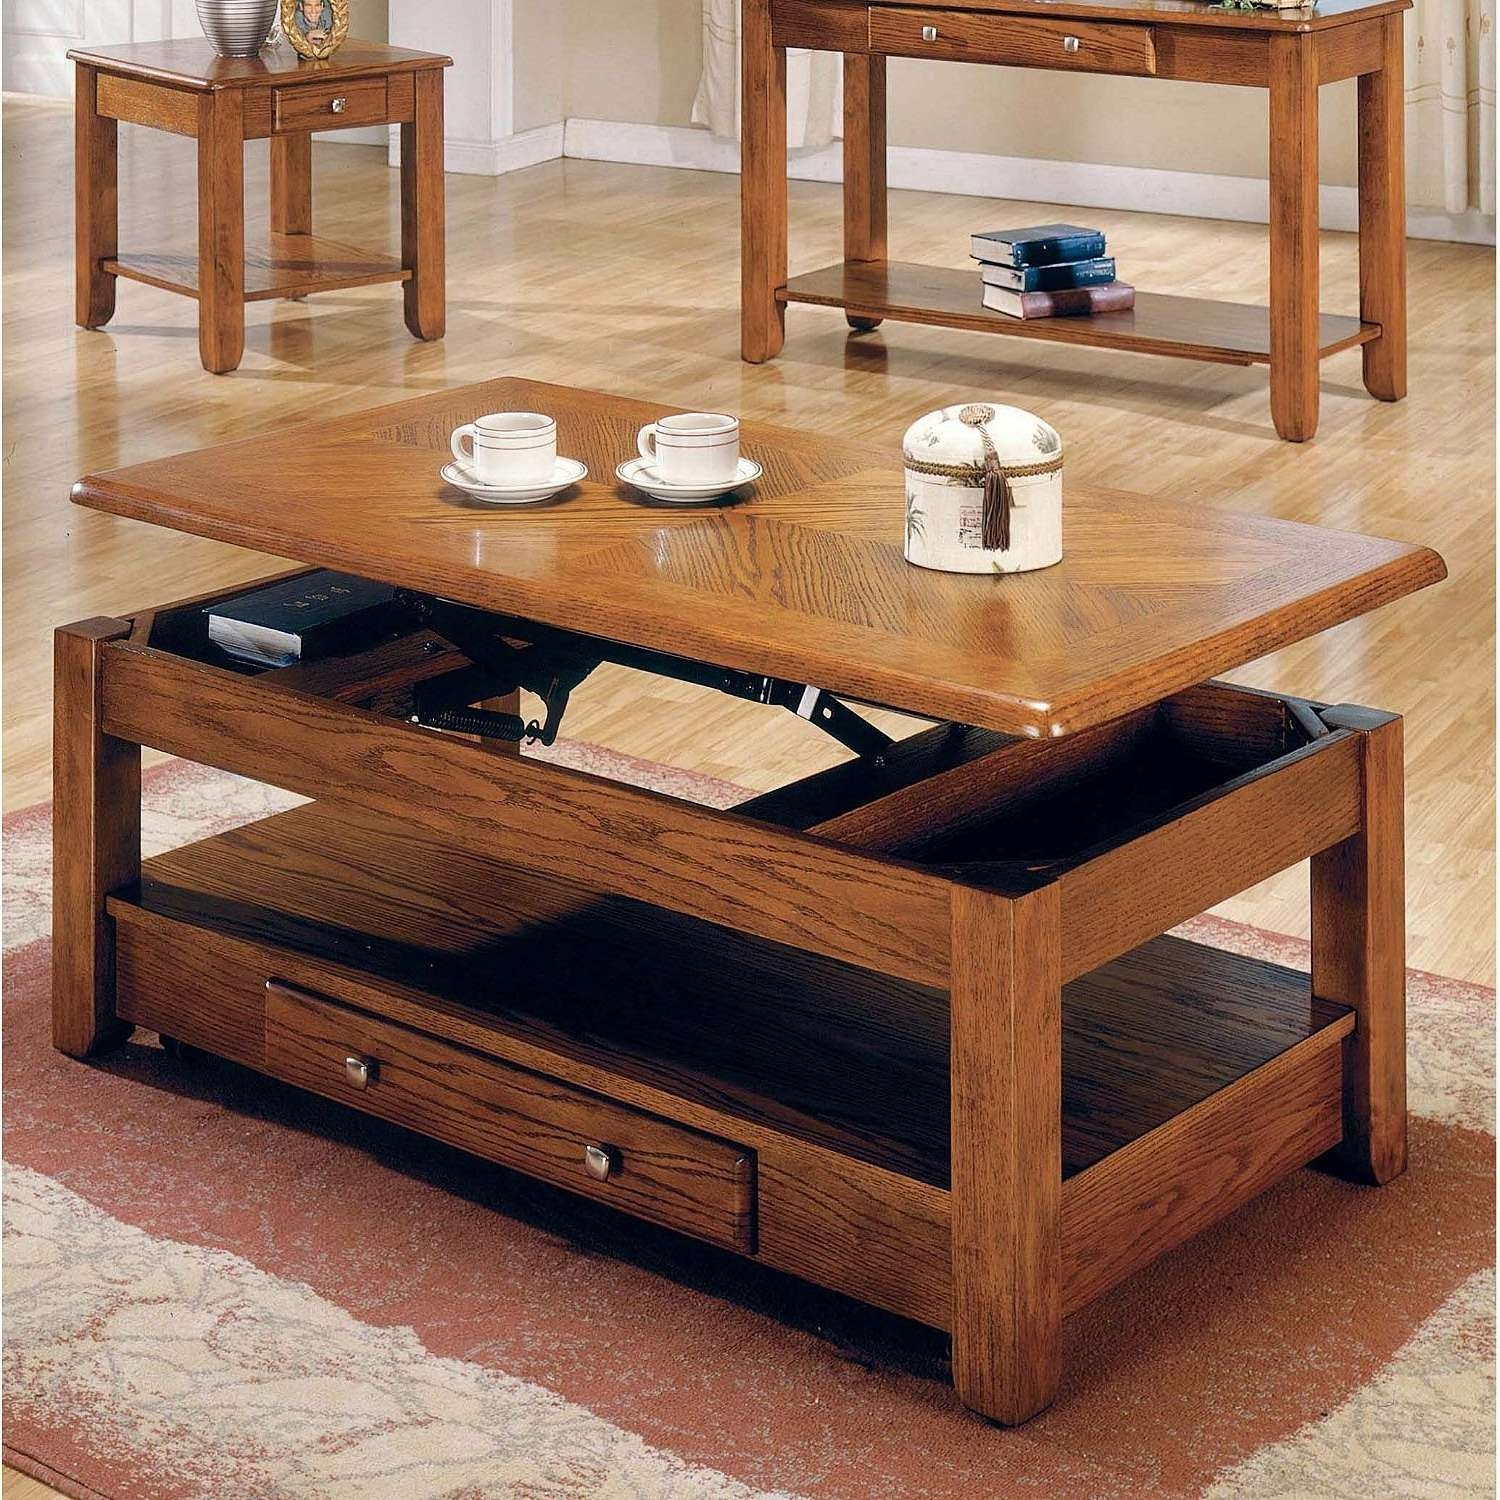 Popular Dining Coffee Tables In Coffee Table : Amazing Cool Coffee Tables Oak Coffee Table (View 16 of 20)